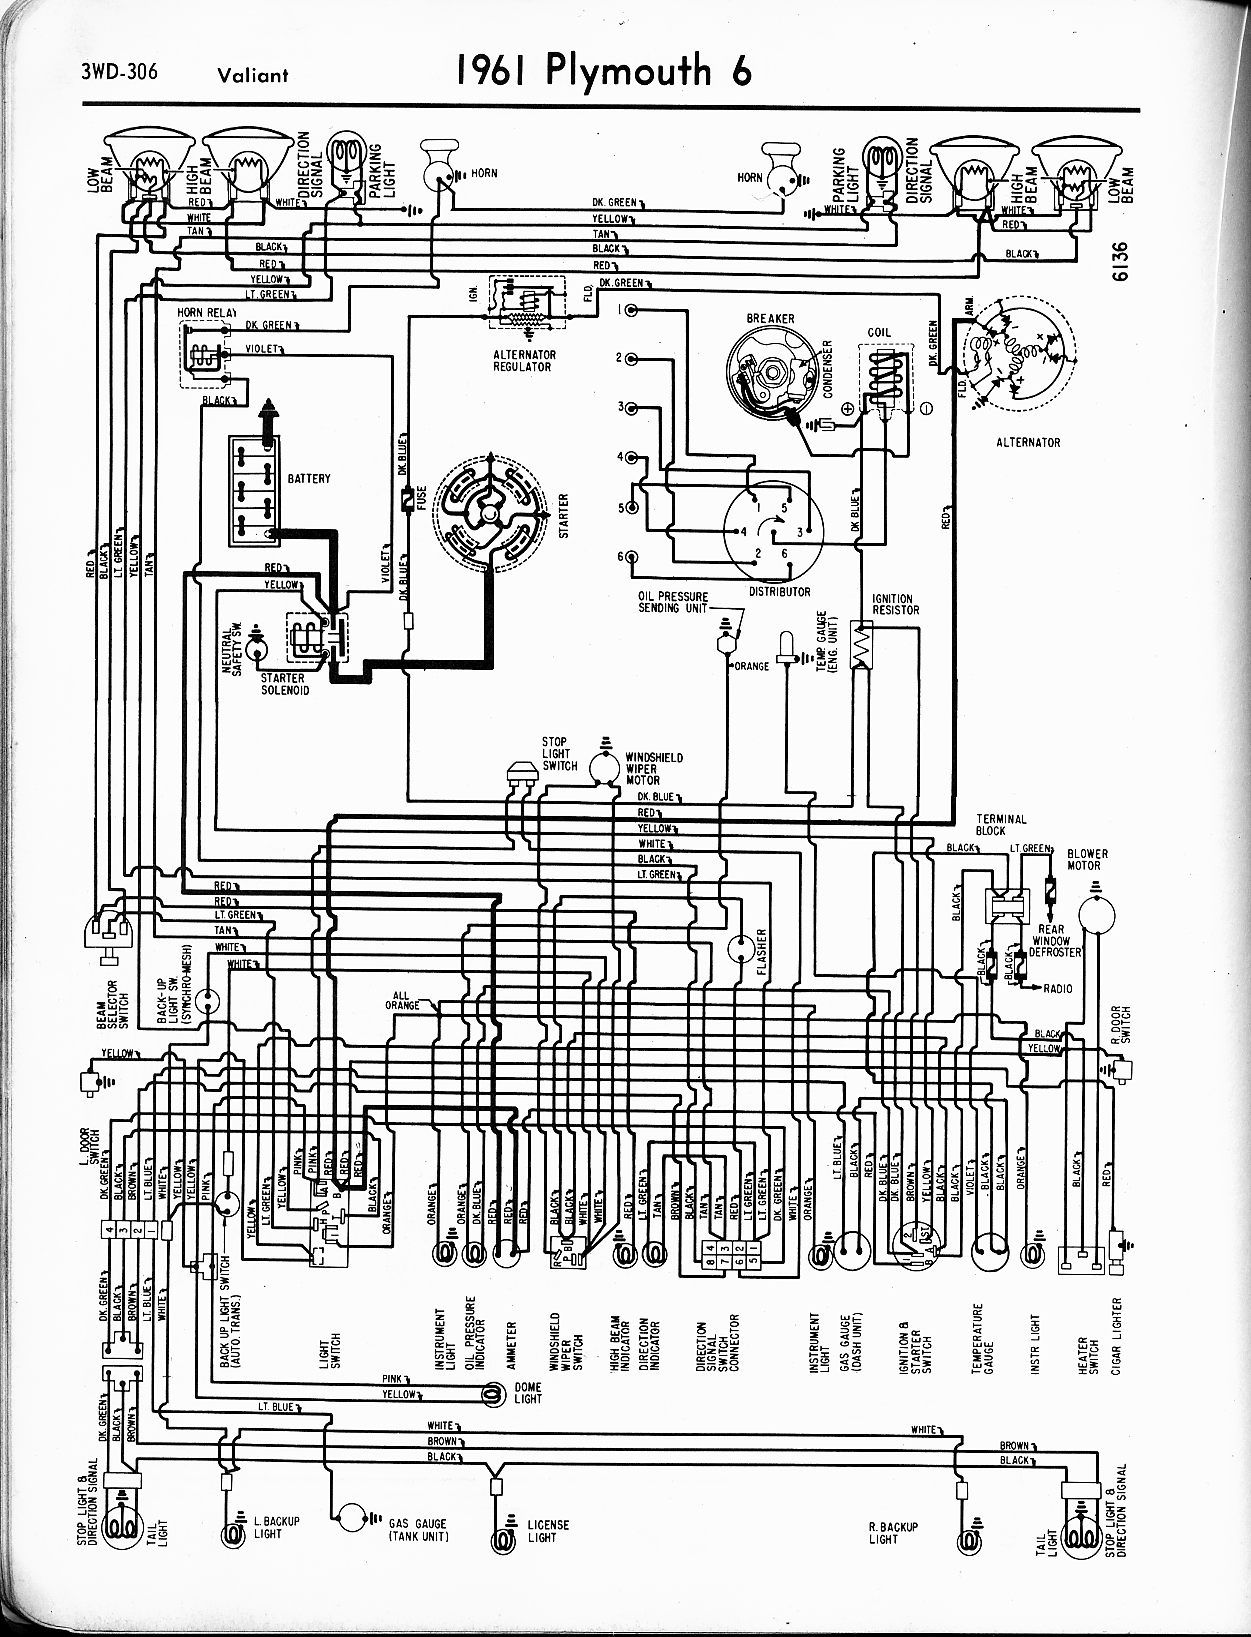 MWire5765 306 1969 plymouth wiring diagram 1969 wiring diagrams instruction 1974 plymouth duster wiring diagram at honlapkeszites.co